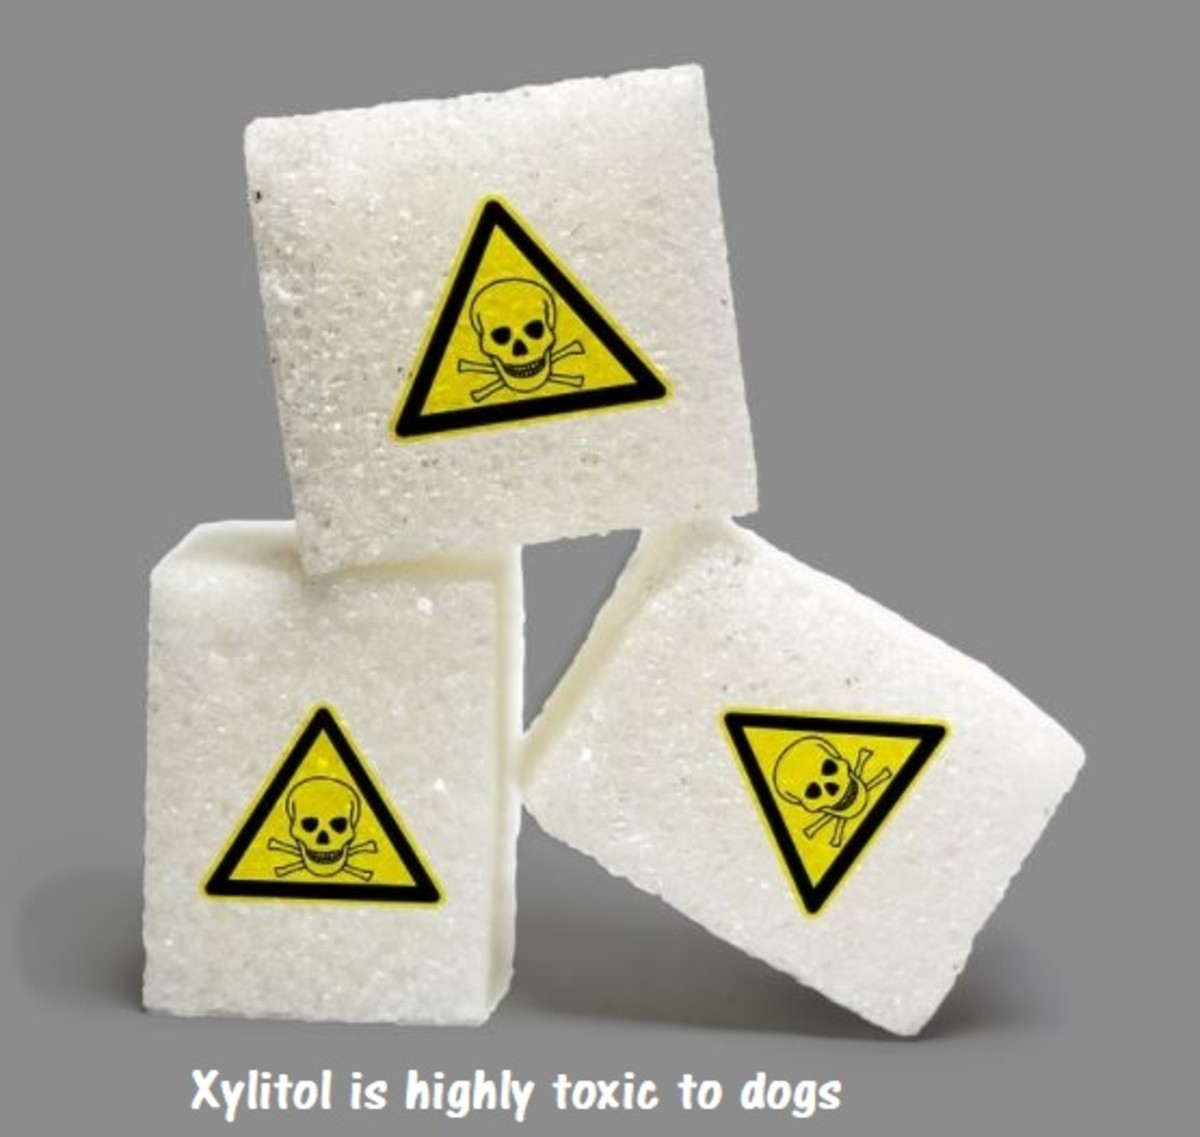 a-list-of-artificial-sweeteners-that-are-bad-for-dogs